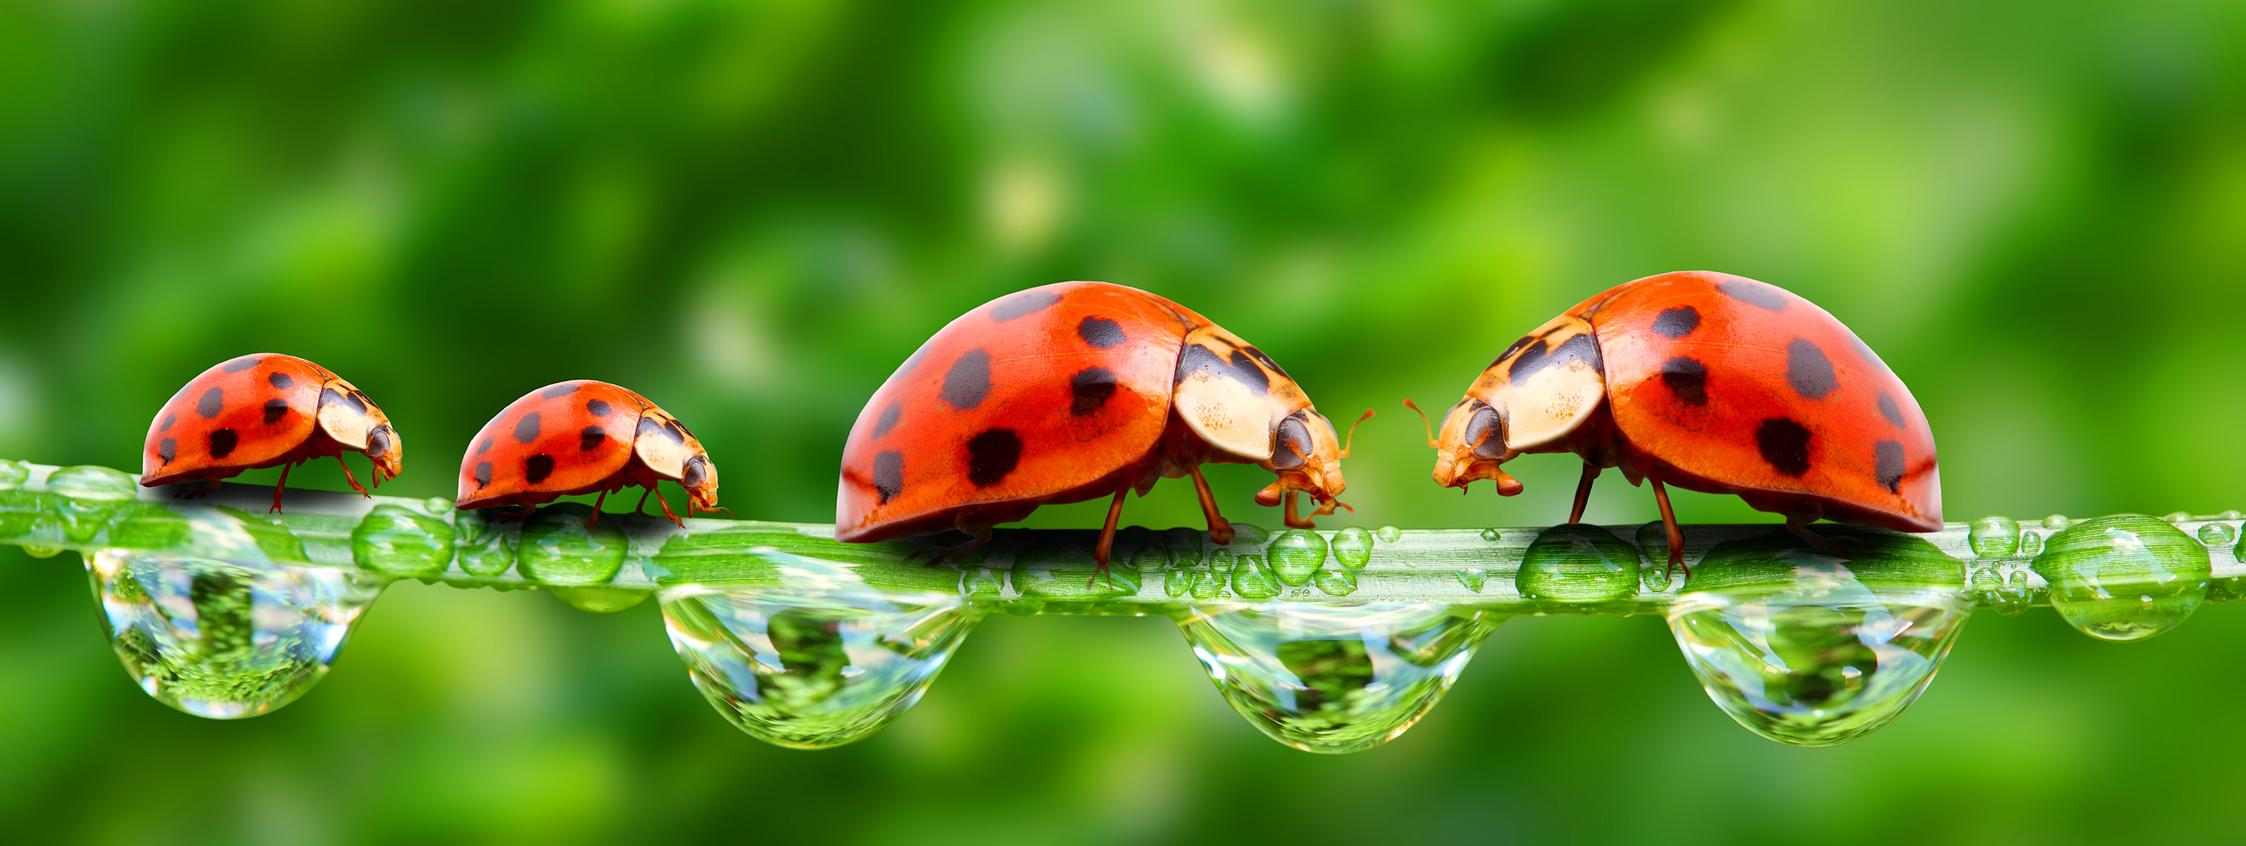 Ladybugs family on a grass bridge.